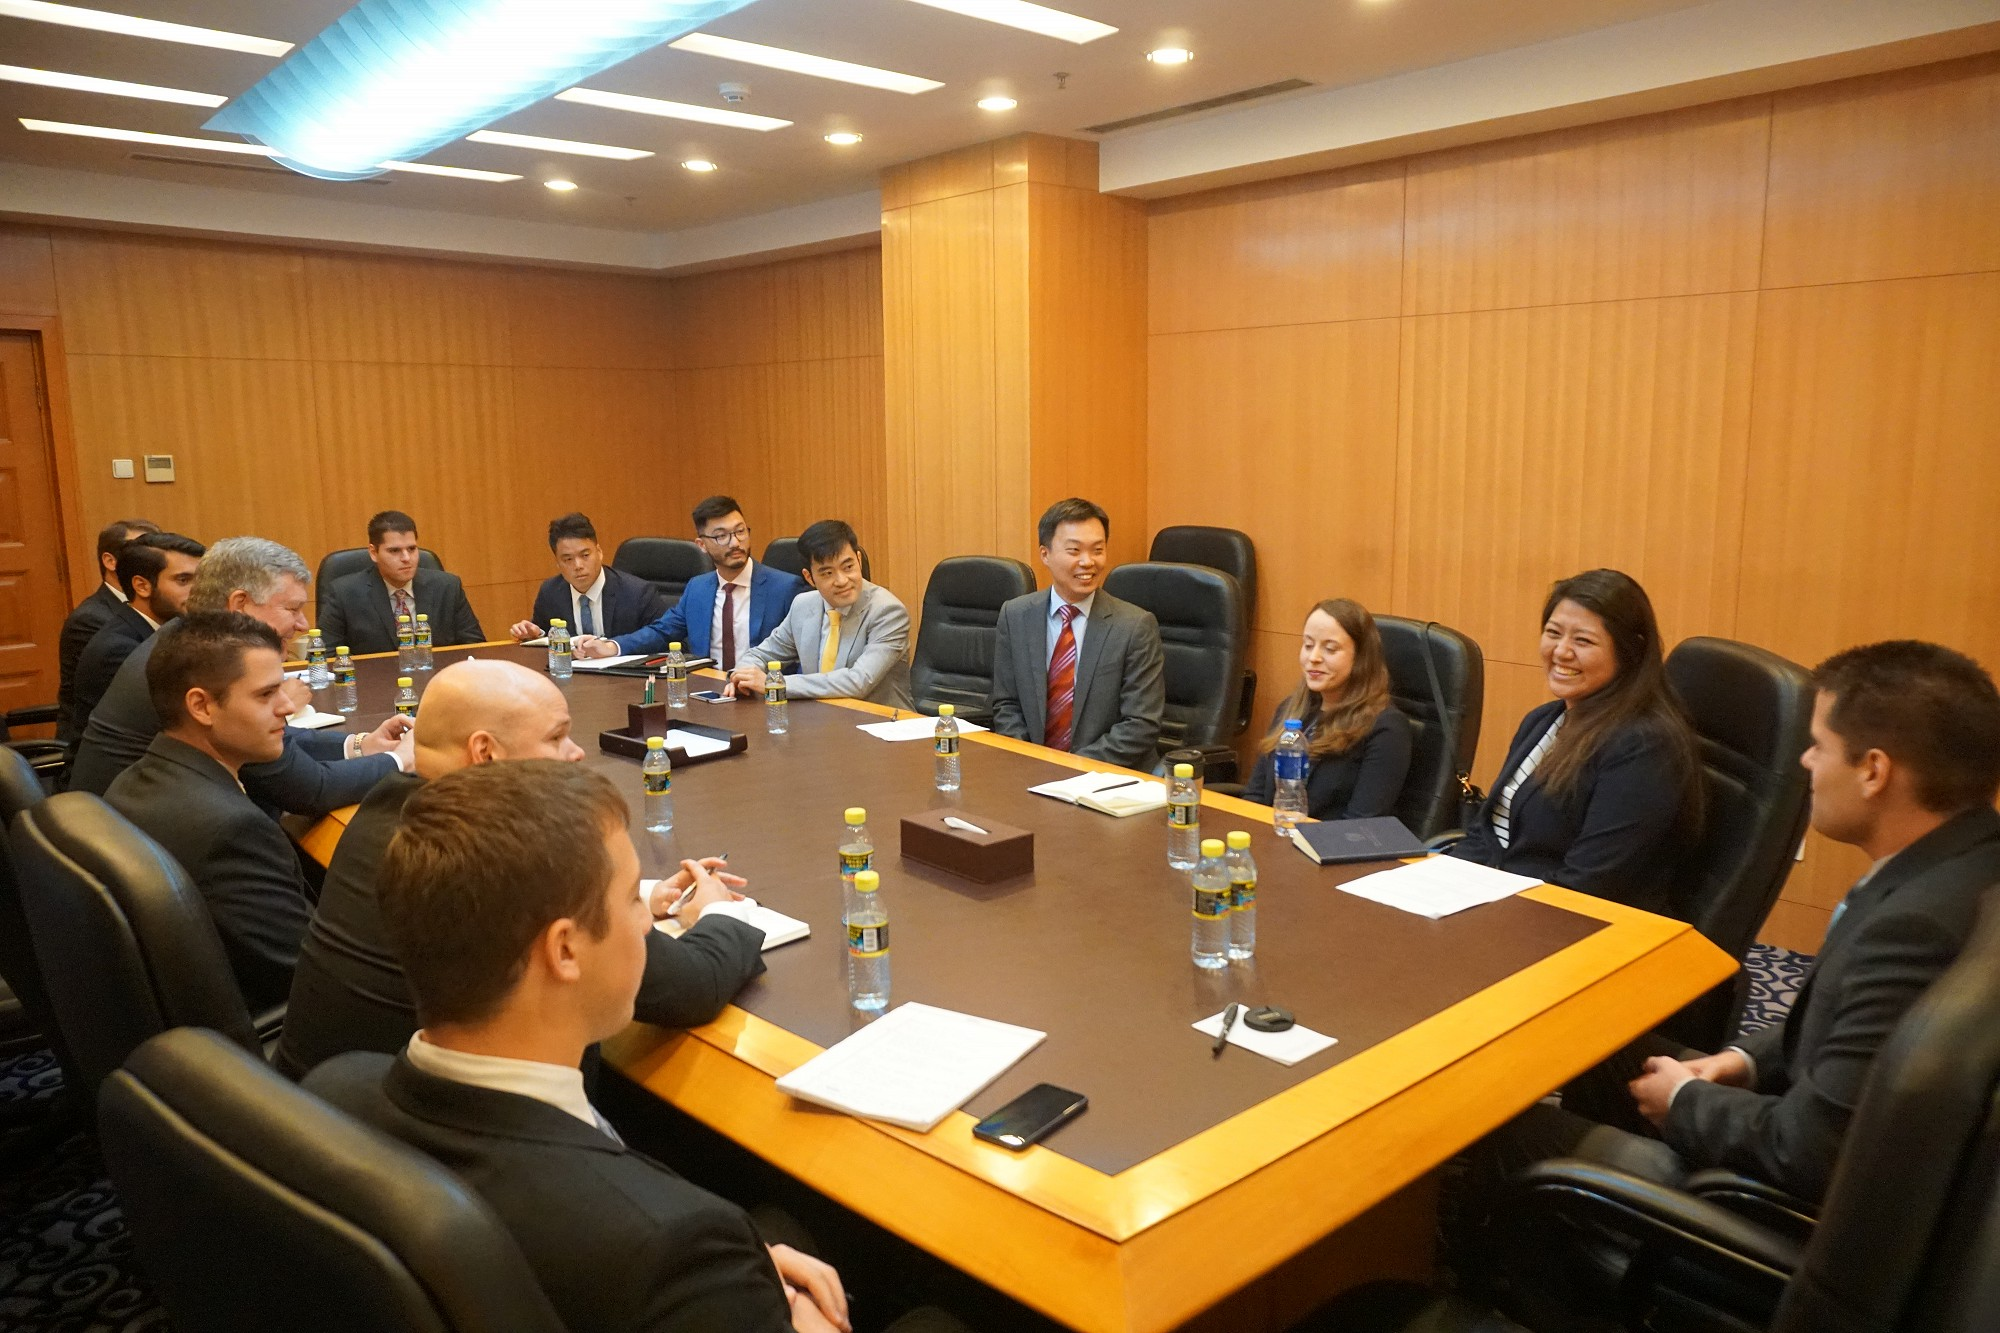 Meeting with Mr. Wang Tong, Deputy Director, Fifth Division, Department of American and Oceanian Affairs Ministry of Foreign Affairs